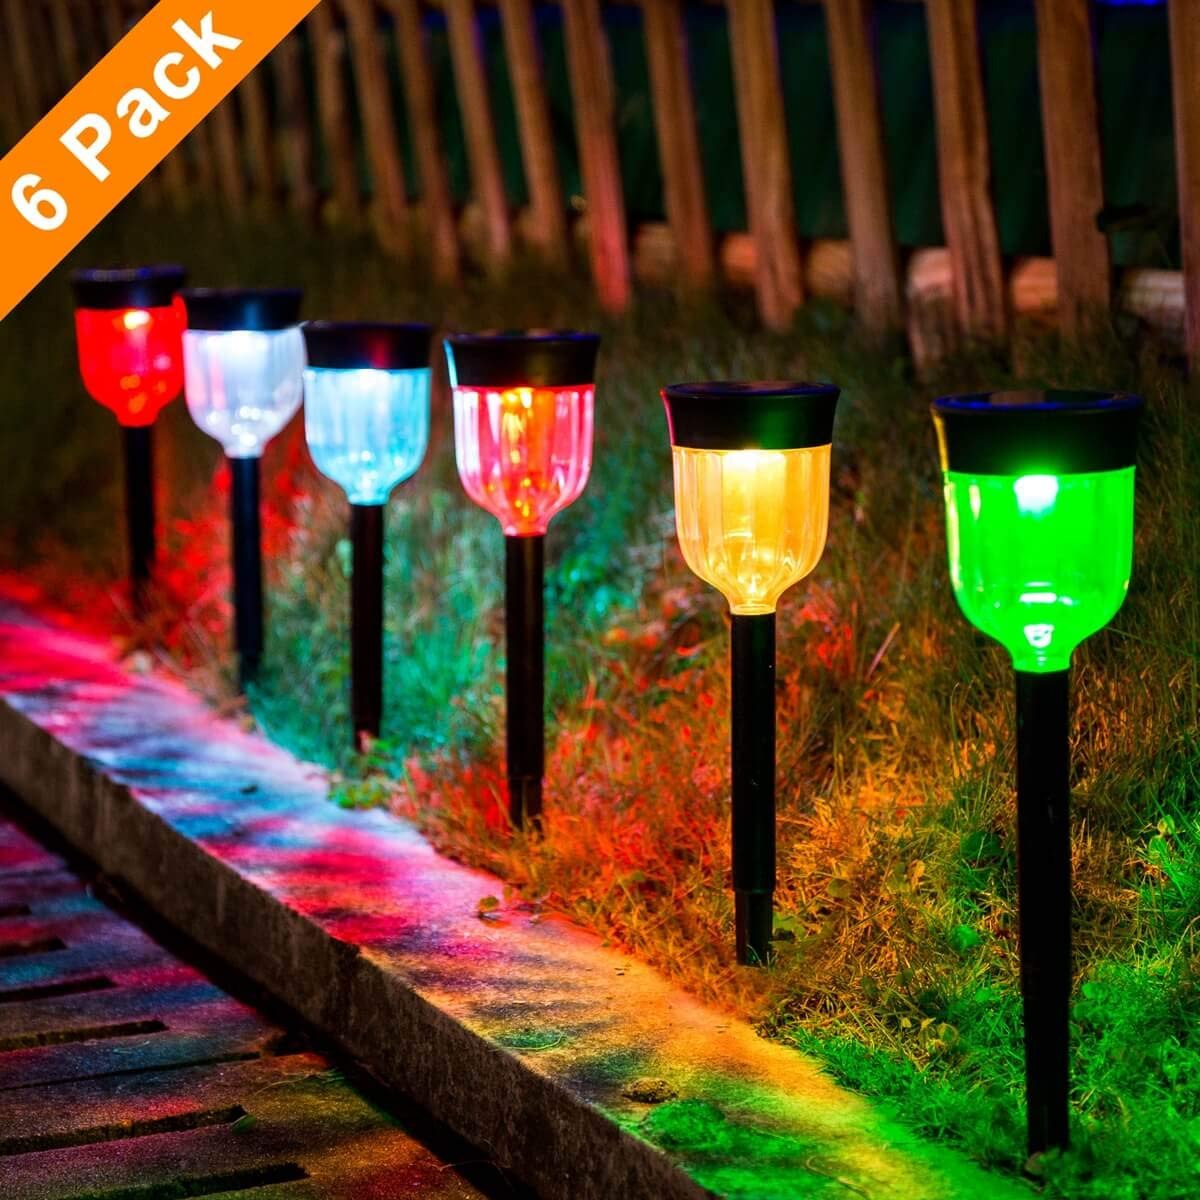 LED Solar Light Outdoor, SMY 6 Packs Solar Pathway Lights with 7 Color Changing Waterproof IP65, Auto On/Off Outdoor Solar Landscape Lights/Pathway Lights for Lawn, Back Yard and Walkway